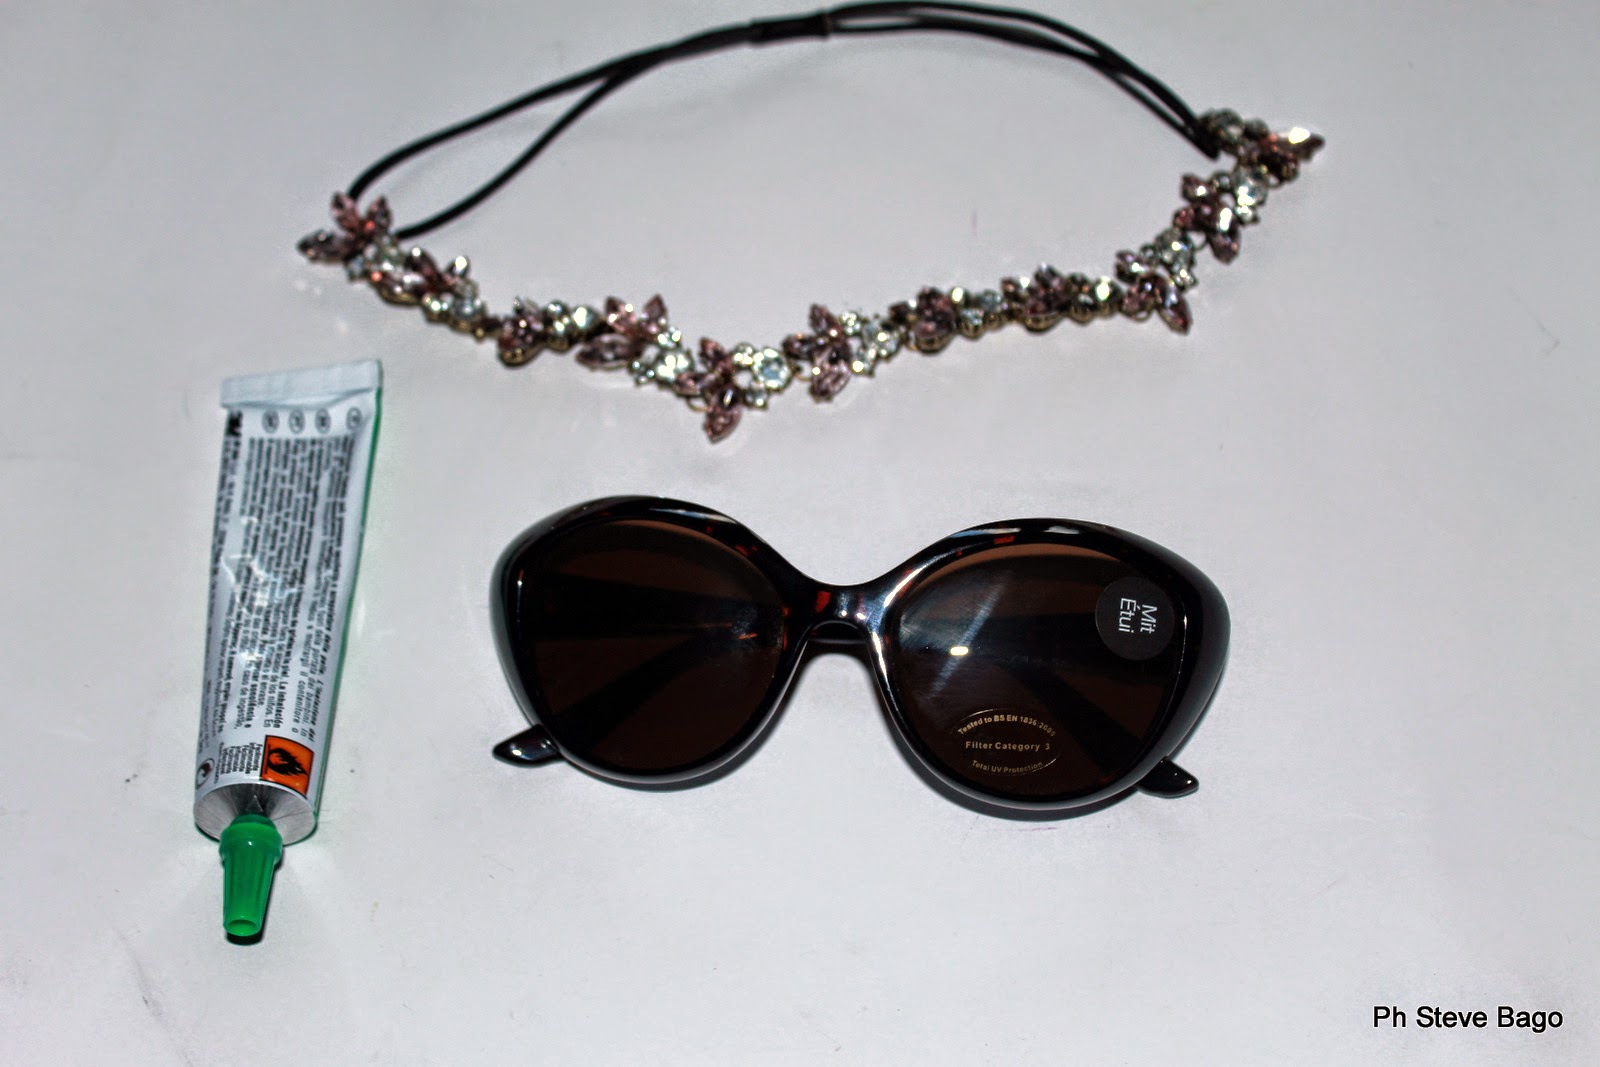 come fare occhiali da sole, themorasmoothie, fashion, fashionblog, fashionblogger, diy, diyblogger, fashion diy, tutorial, craft, tutorial occhiali, tutorial sunglasses, diy dsquared2, dsquared2, diycraft, diyproject, occhiali da sole fashion, fashion sunglasses, italianblogger, blogger, swarovski